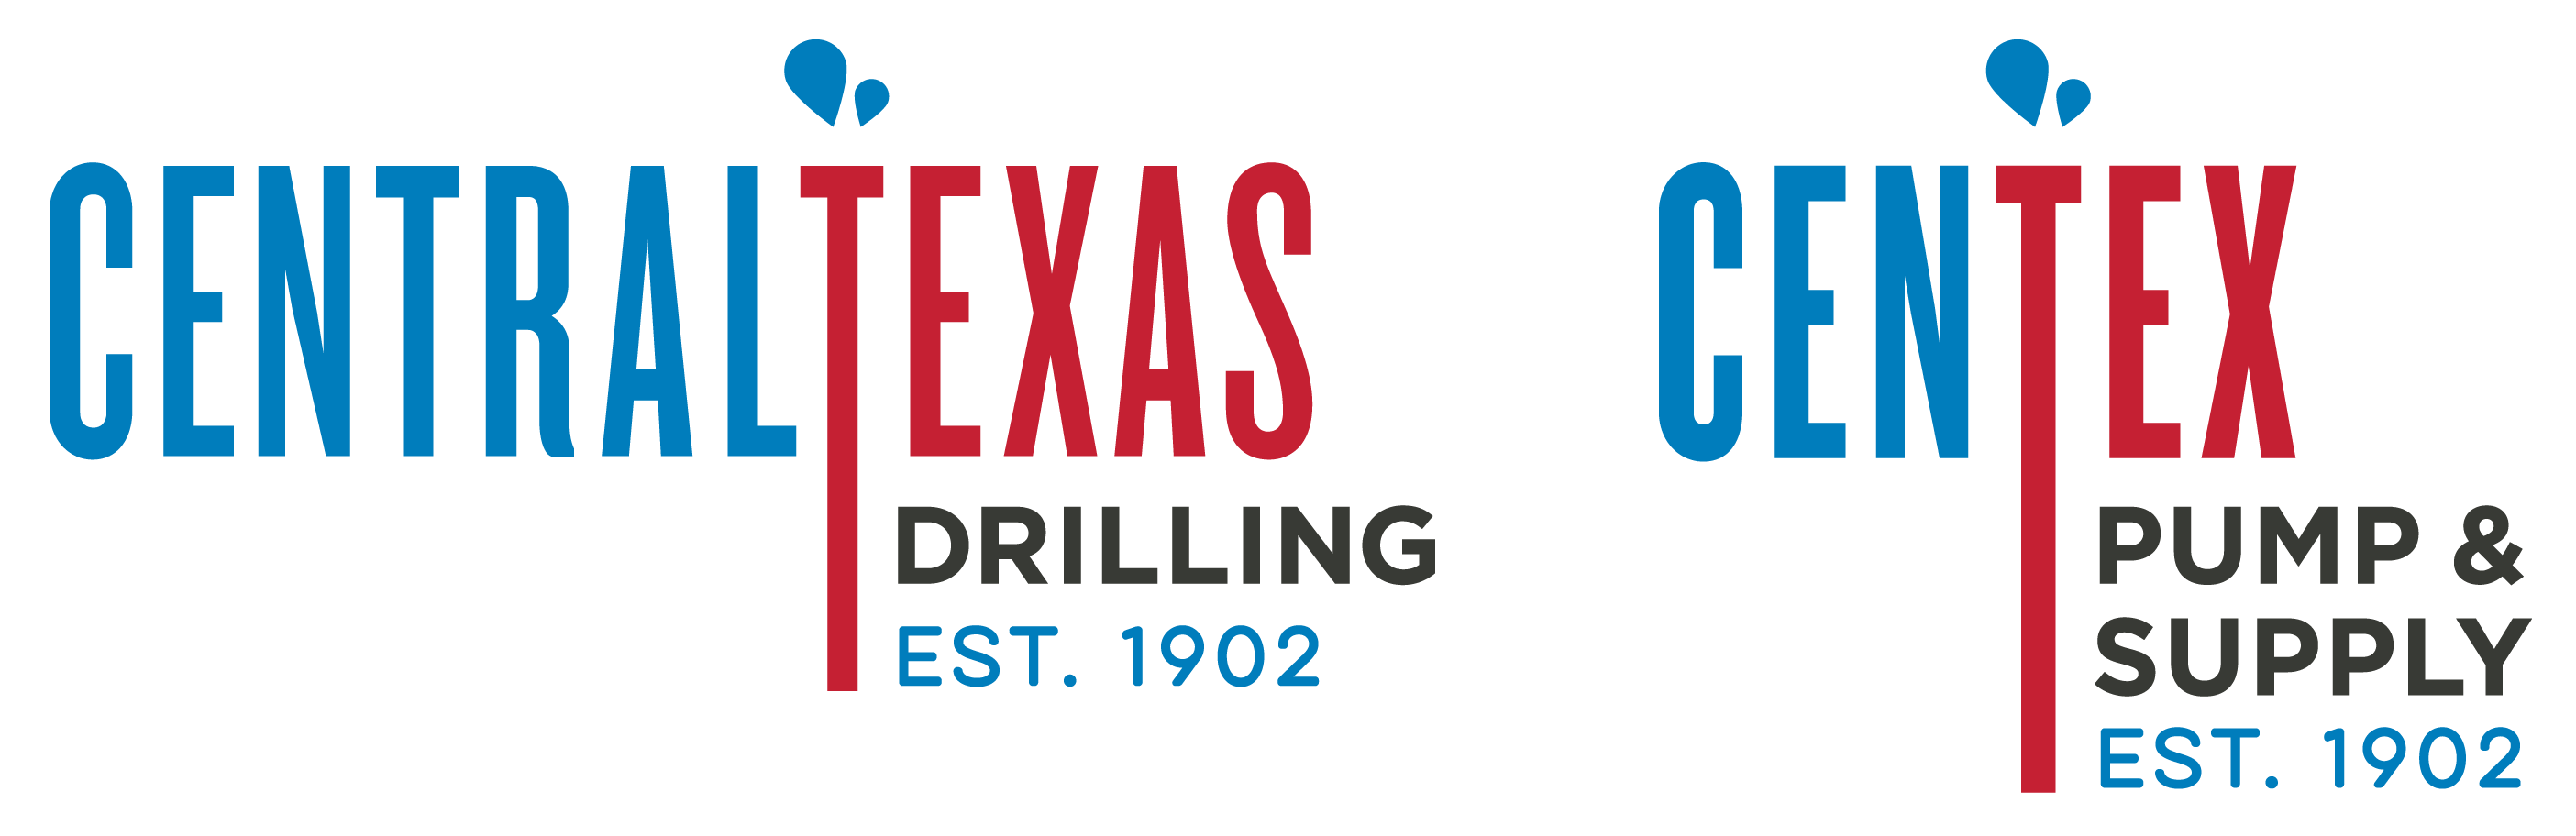 Central Texas Drilling